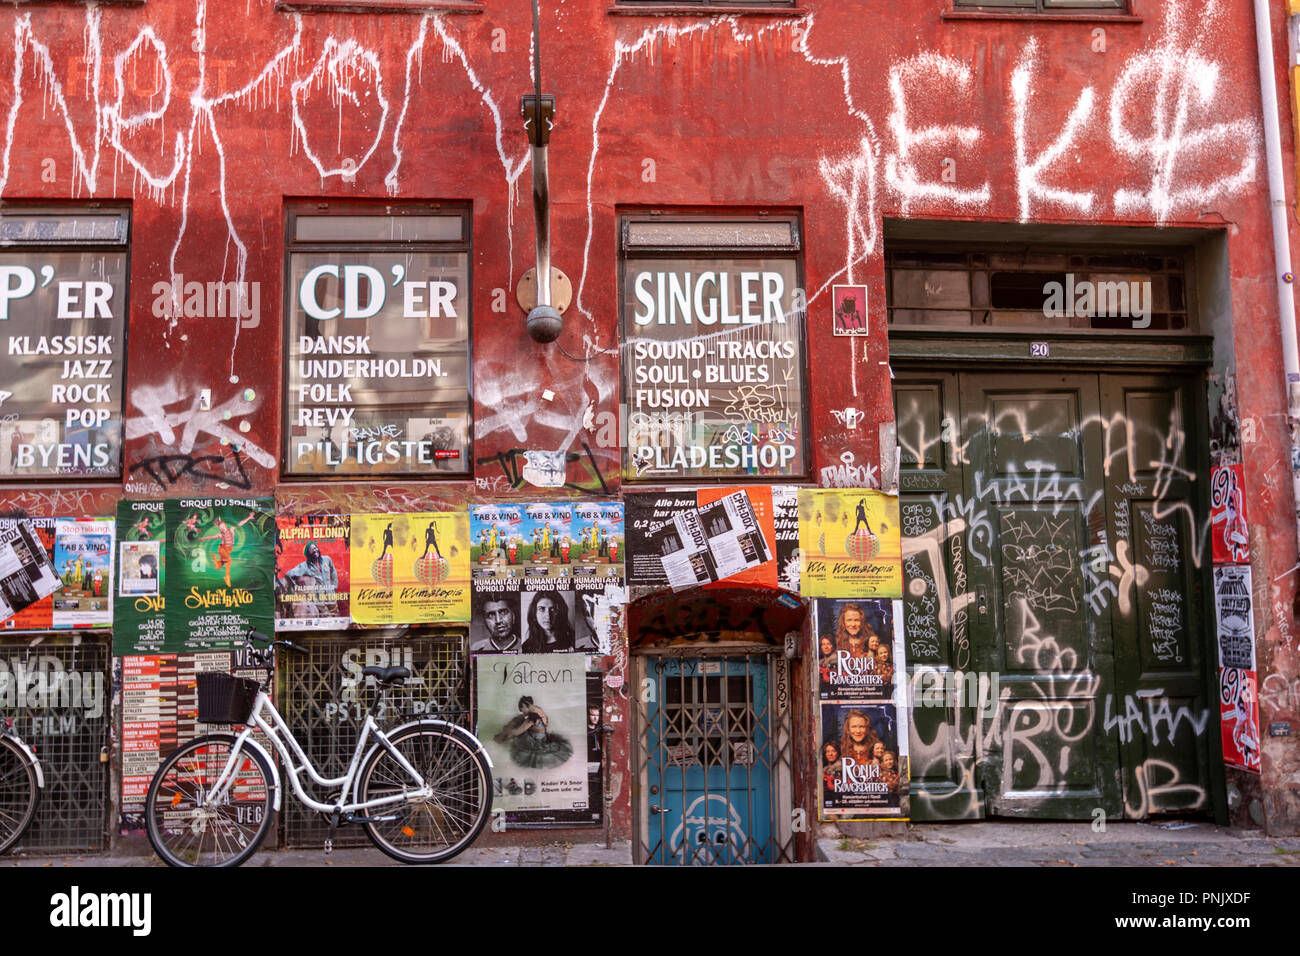 Poster wall to announce concerts, festivals, and Copenhagen, Denmark - Stock Image